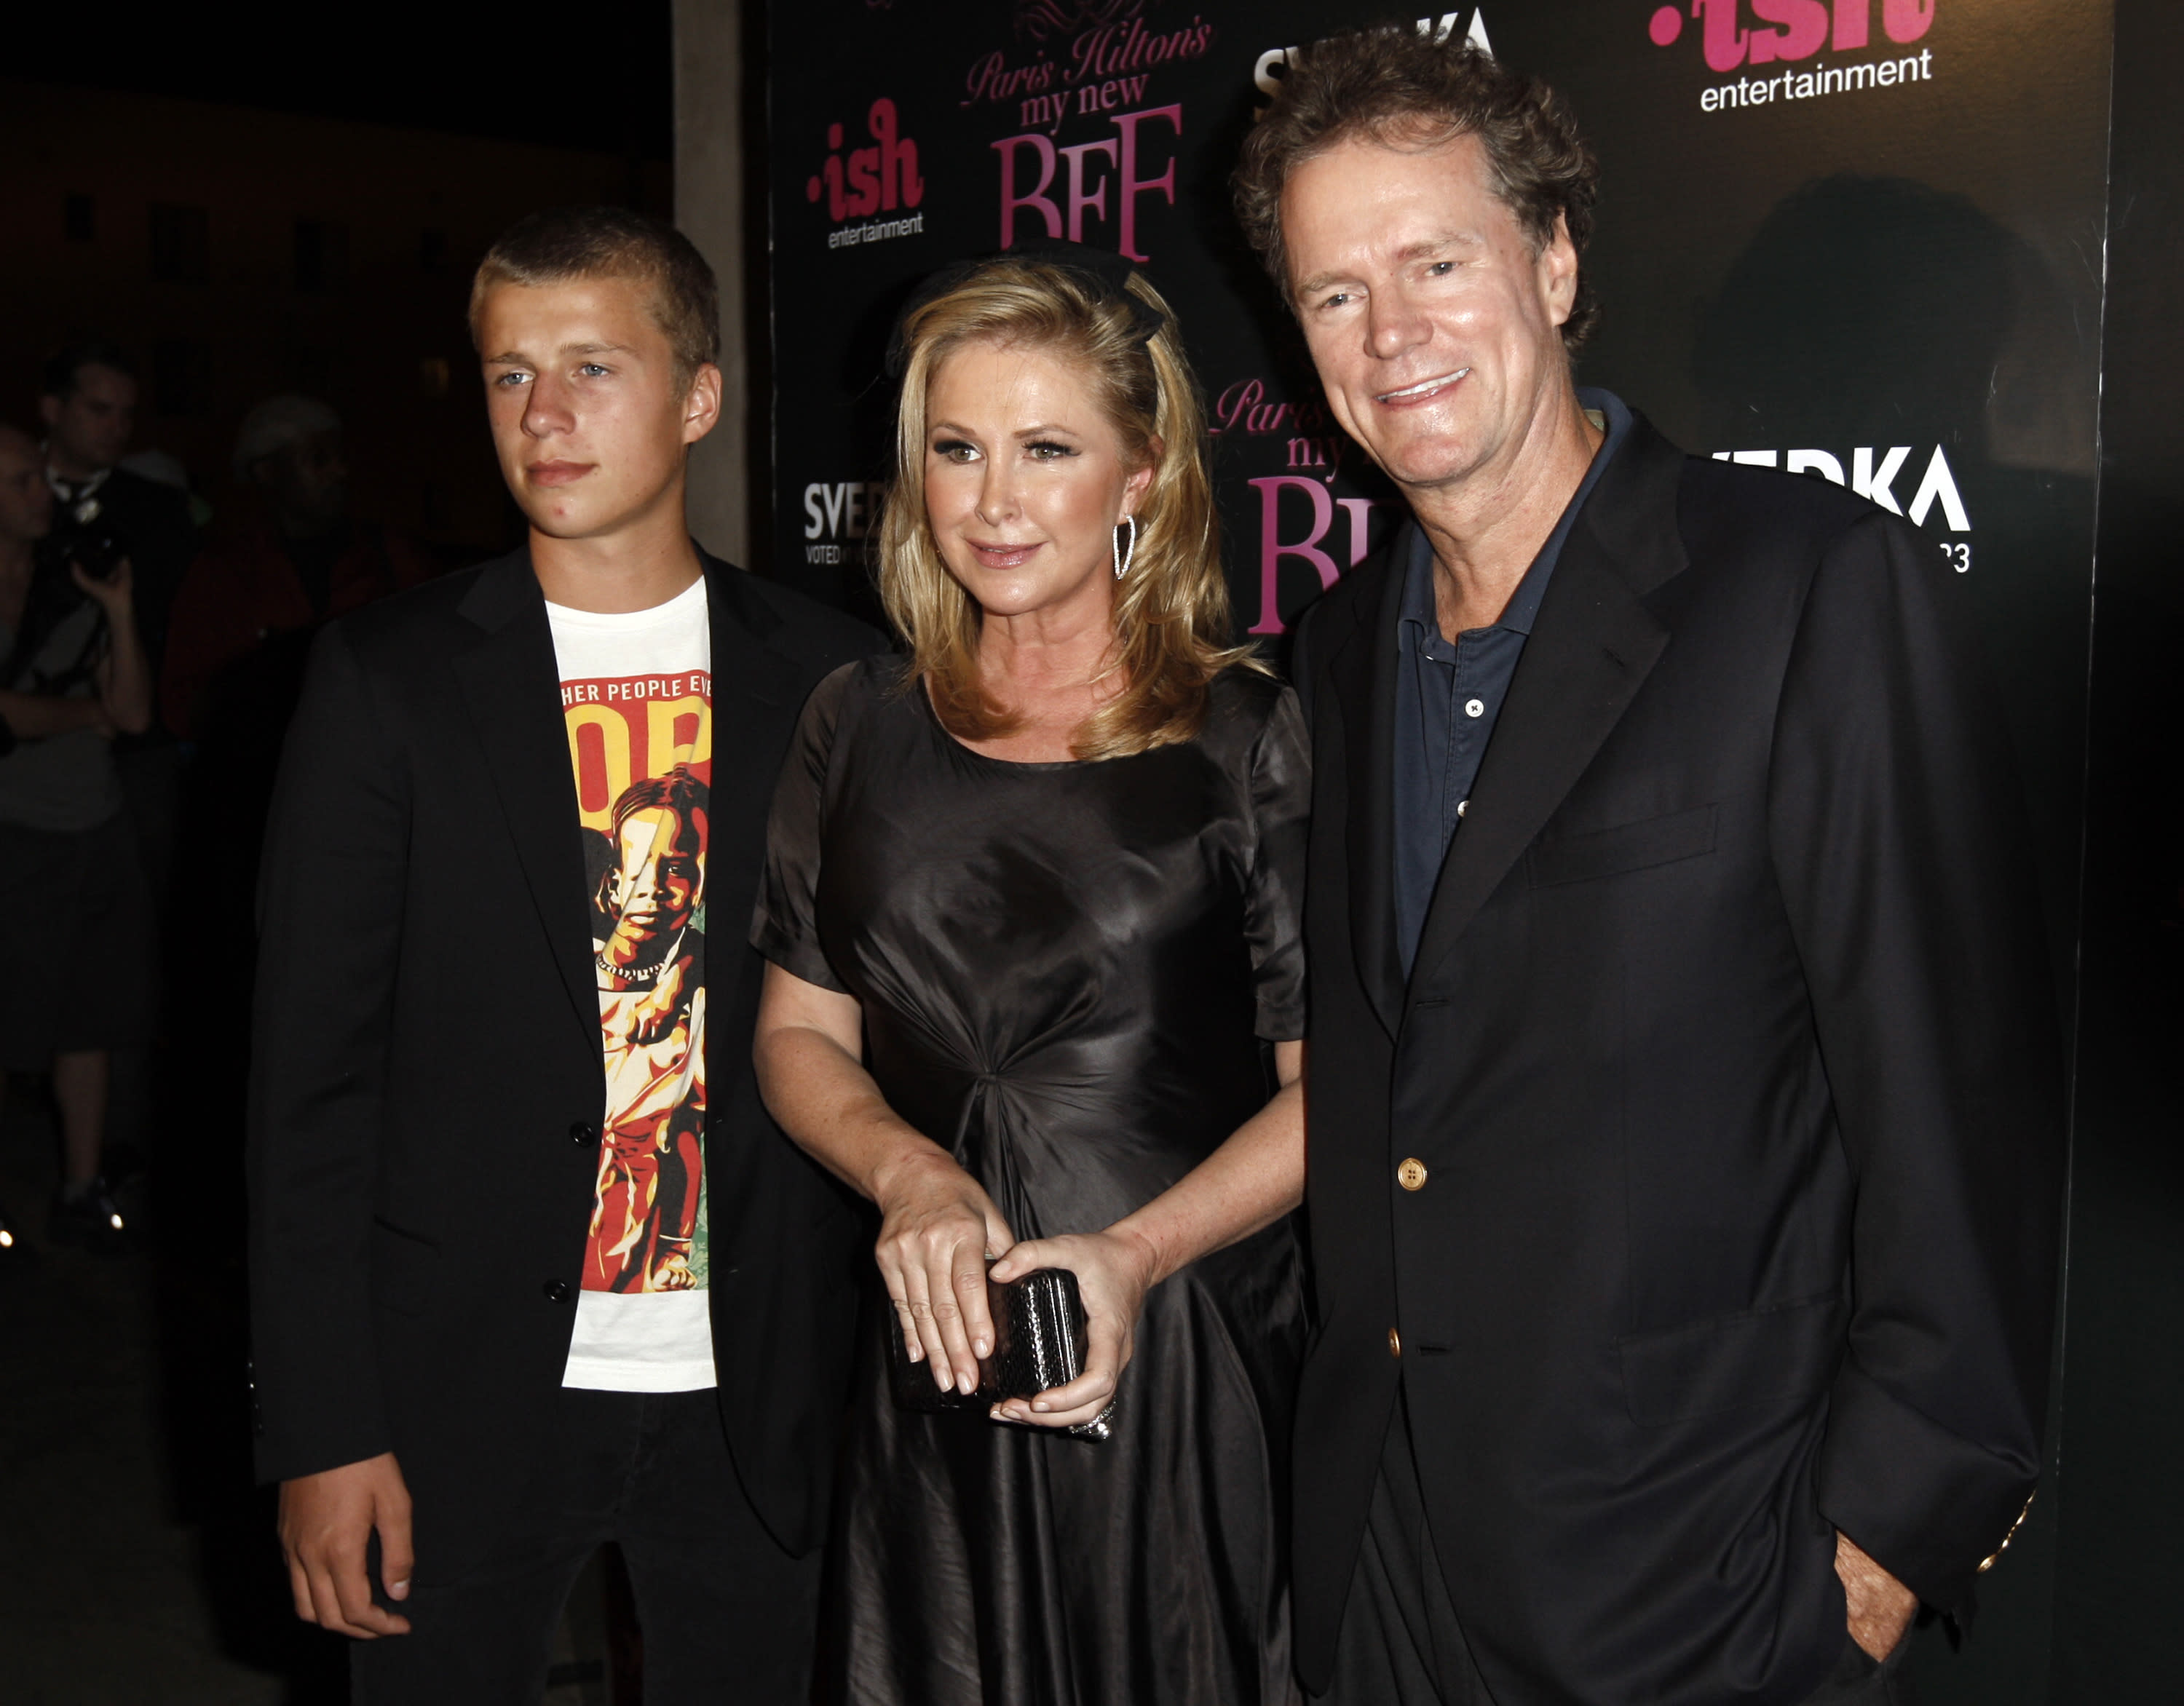 Paris Hilton brother Conrad to plead guilty to plane assault